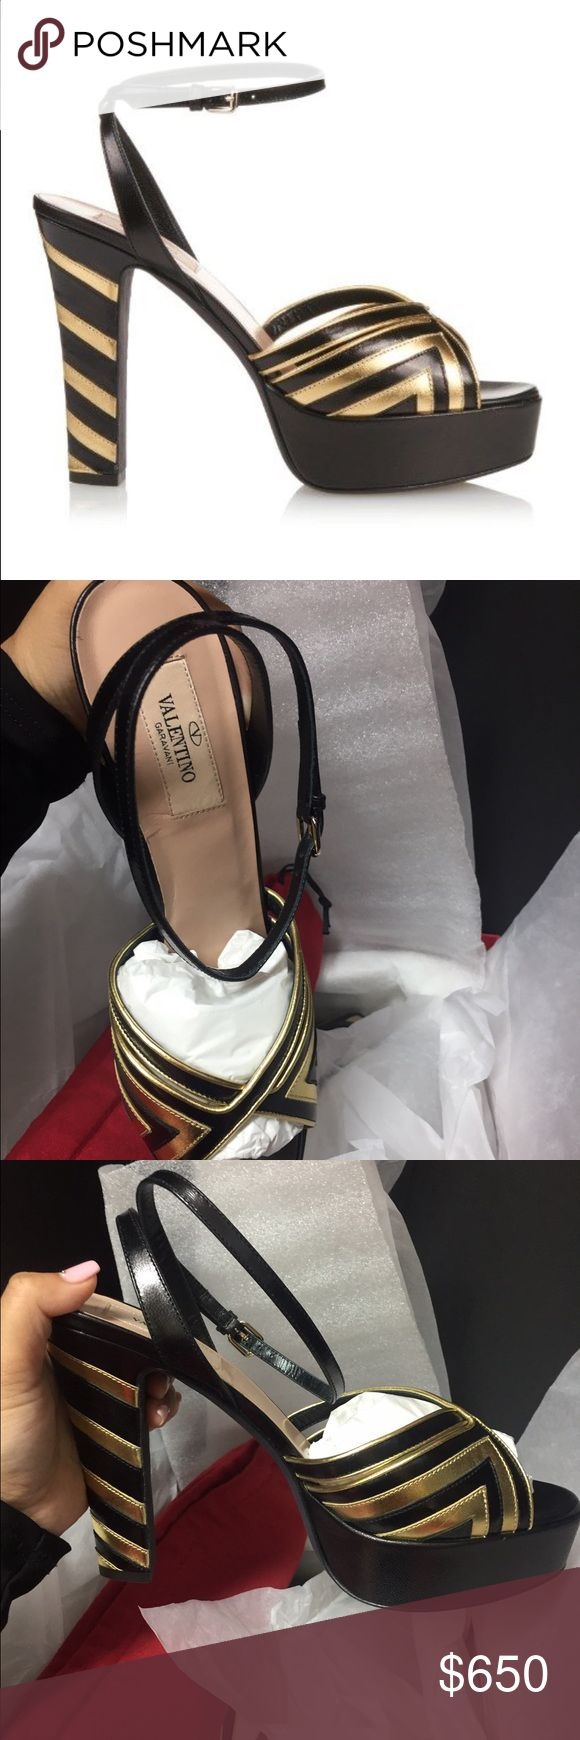 Valentino garavani black gold platforms 100 % authentic Valentino garavani platforms in black and gold. Comes with everything you see in the pictures. Sizes 37, 38, and 39. Reasonable offers accepted! Valentino Garavani Shoes Platforms